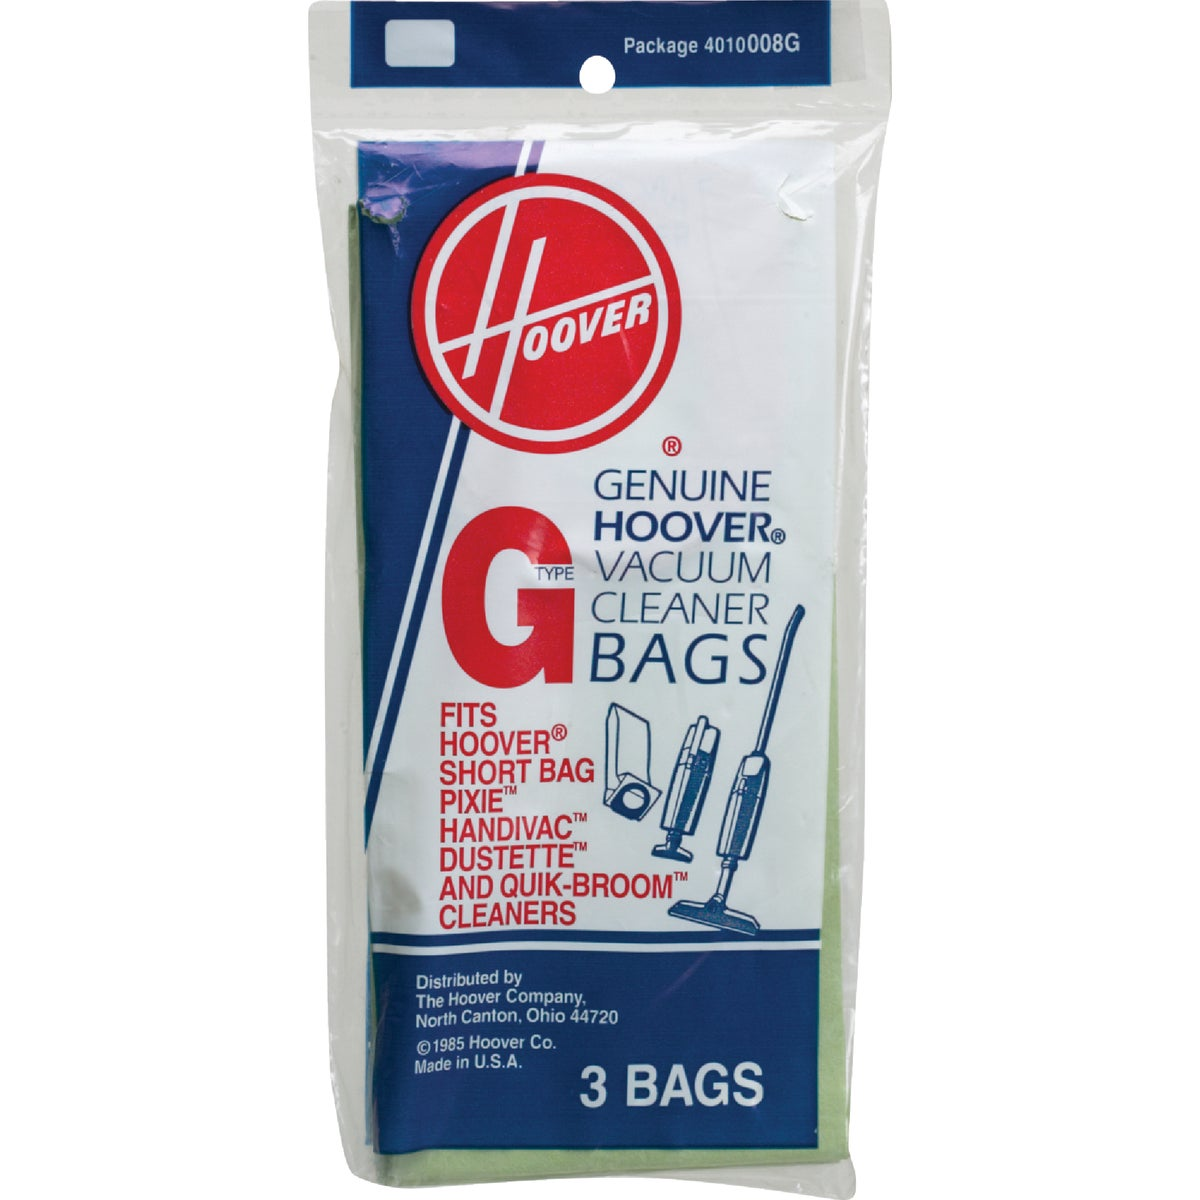 TYPE G VAC CLEANER BAG - 4010008G by Hoover Co